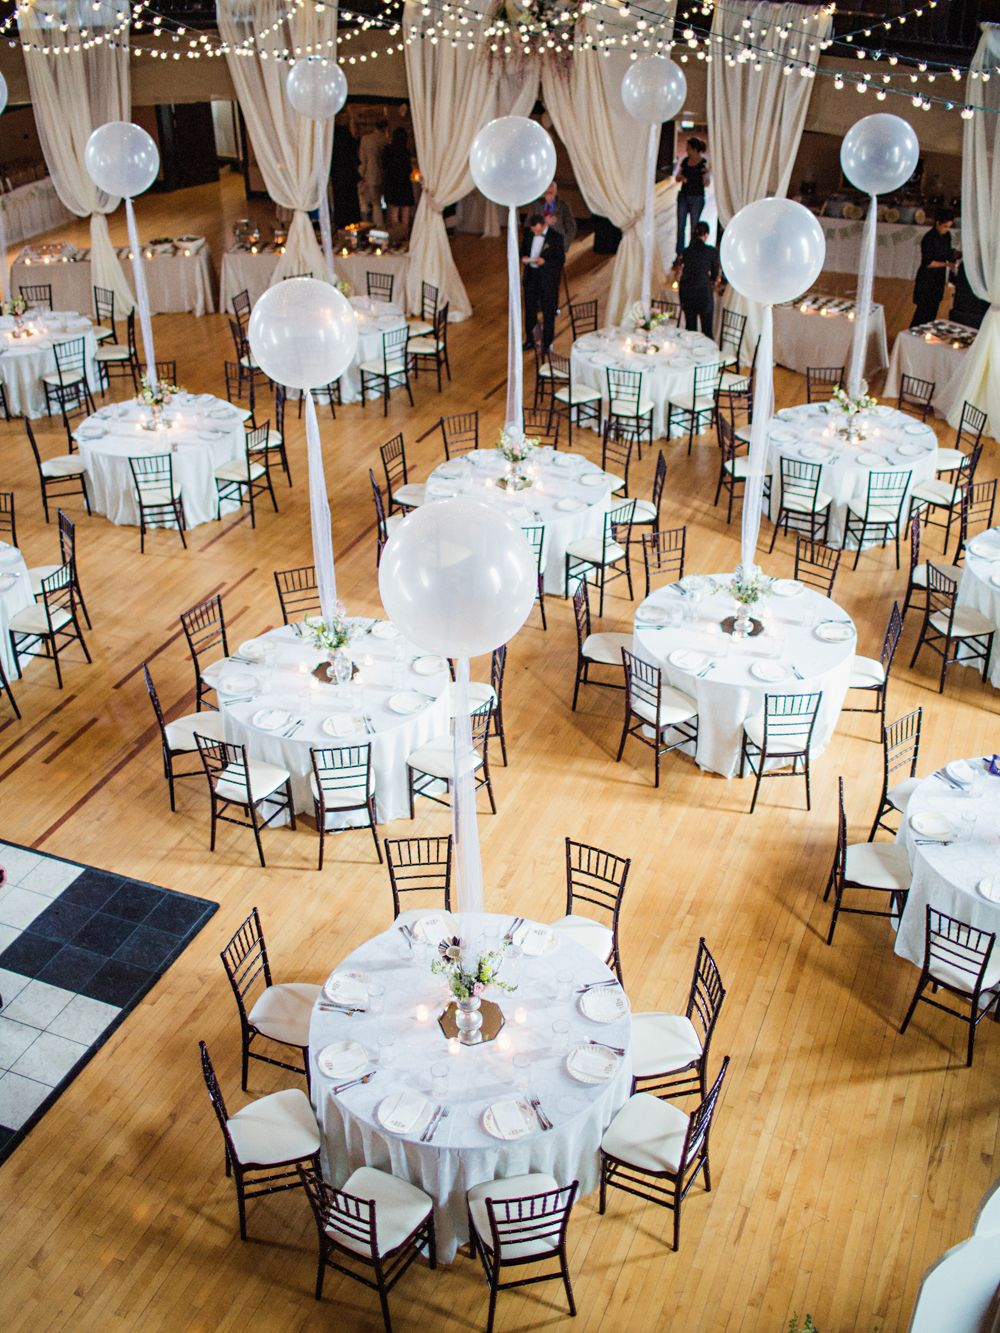 Wedding balloon decor - Find This Pin And More On Wedding Unique Balloon Centerpiece